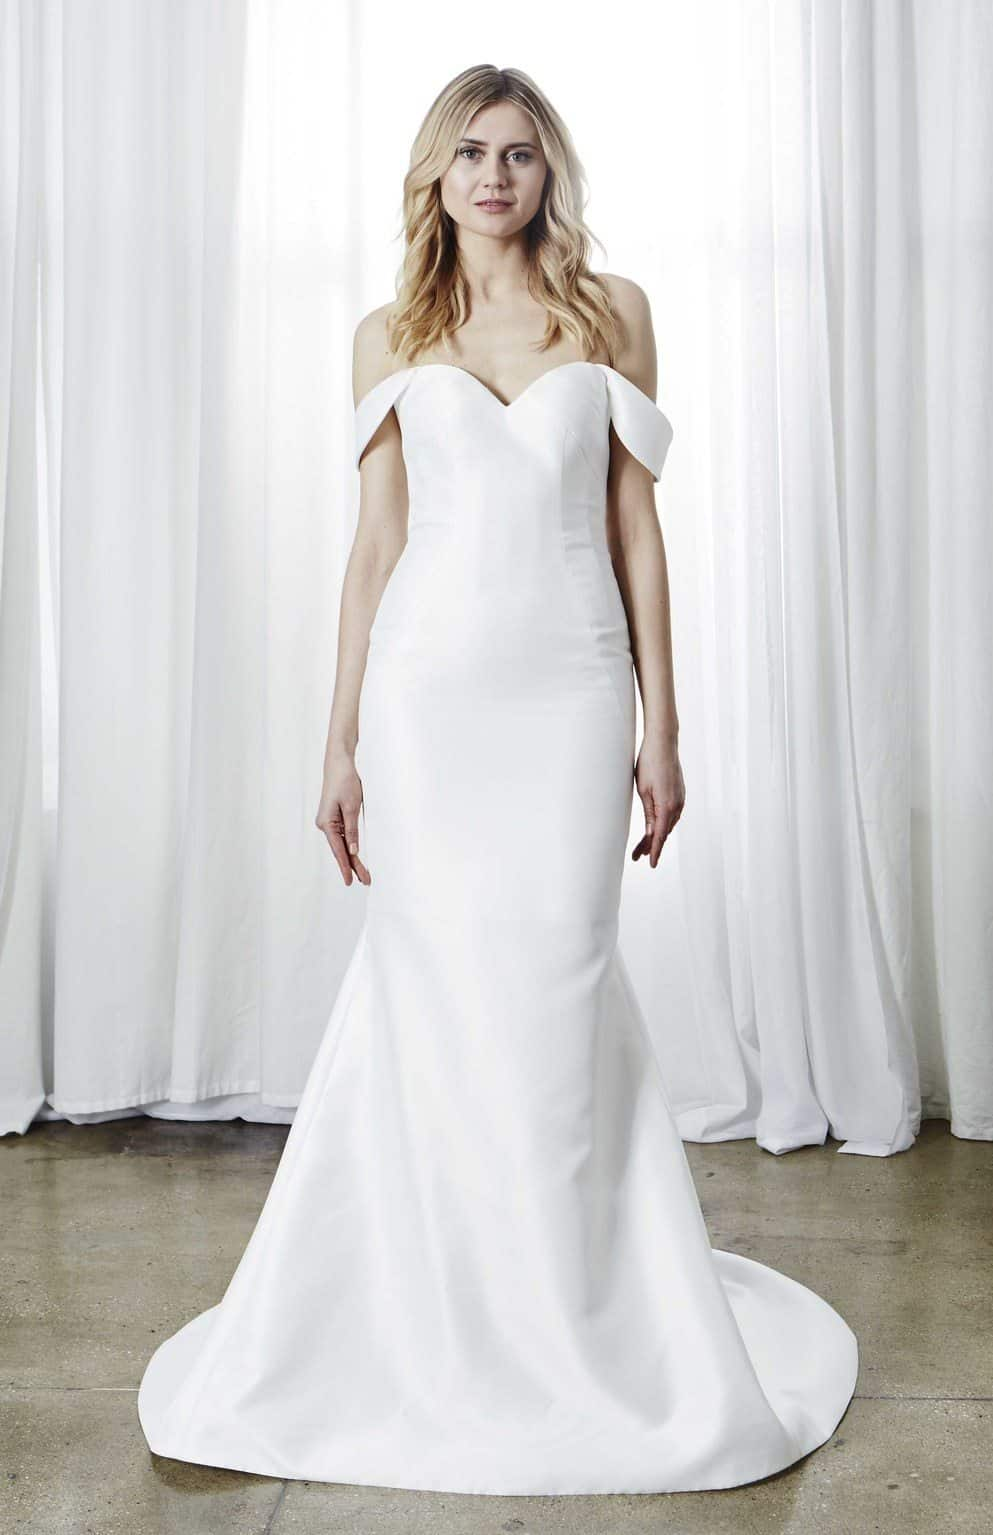 minimalismo-kelly-faetanini-wedding-dresses-spring-2019-016